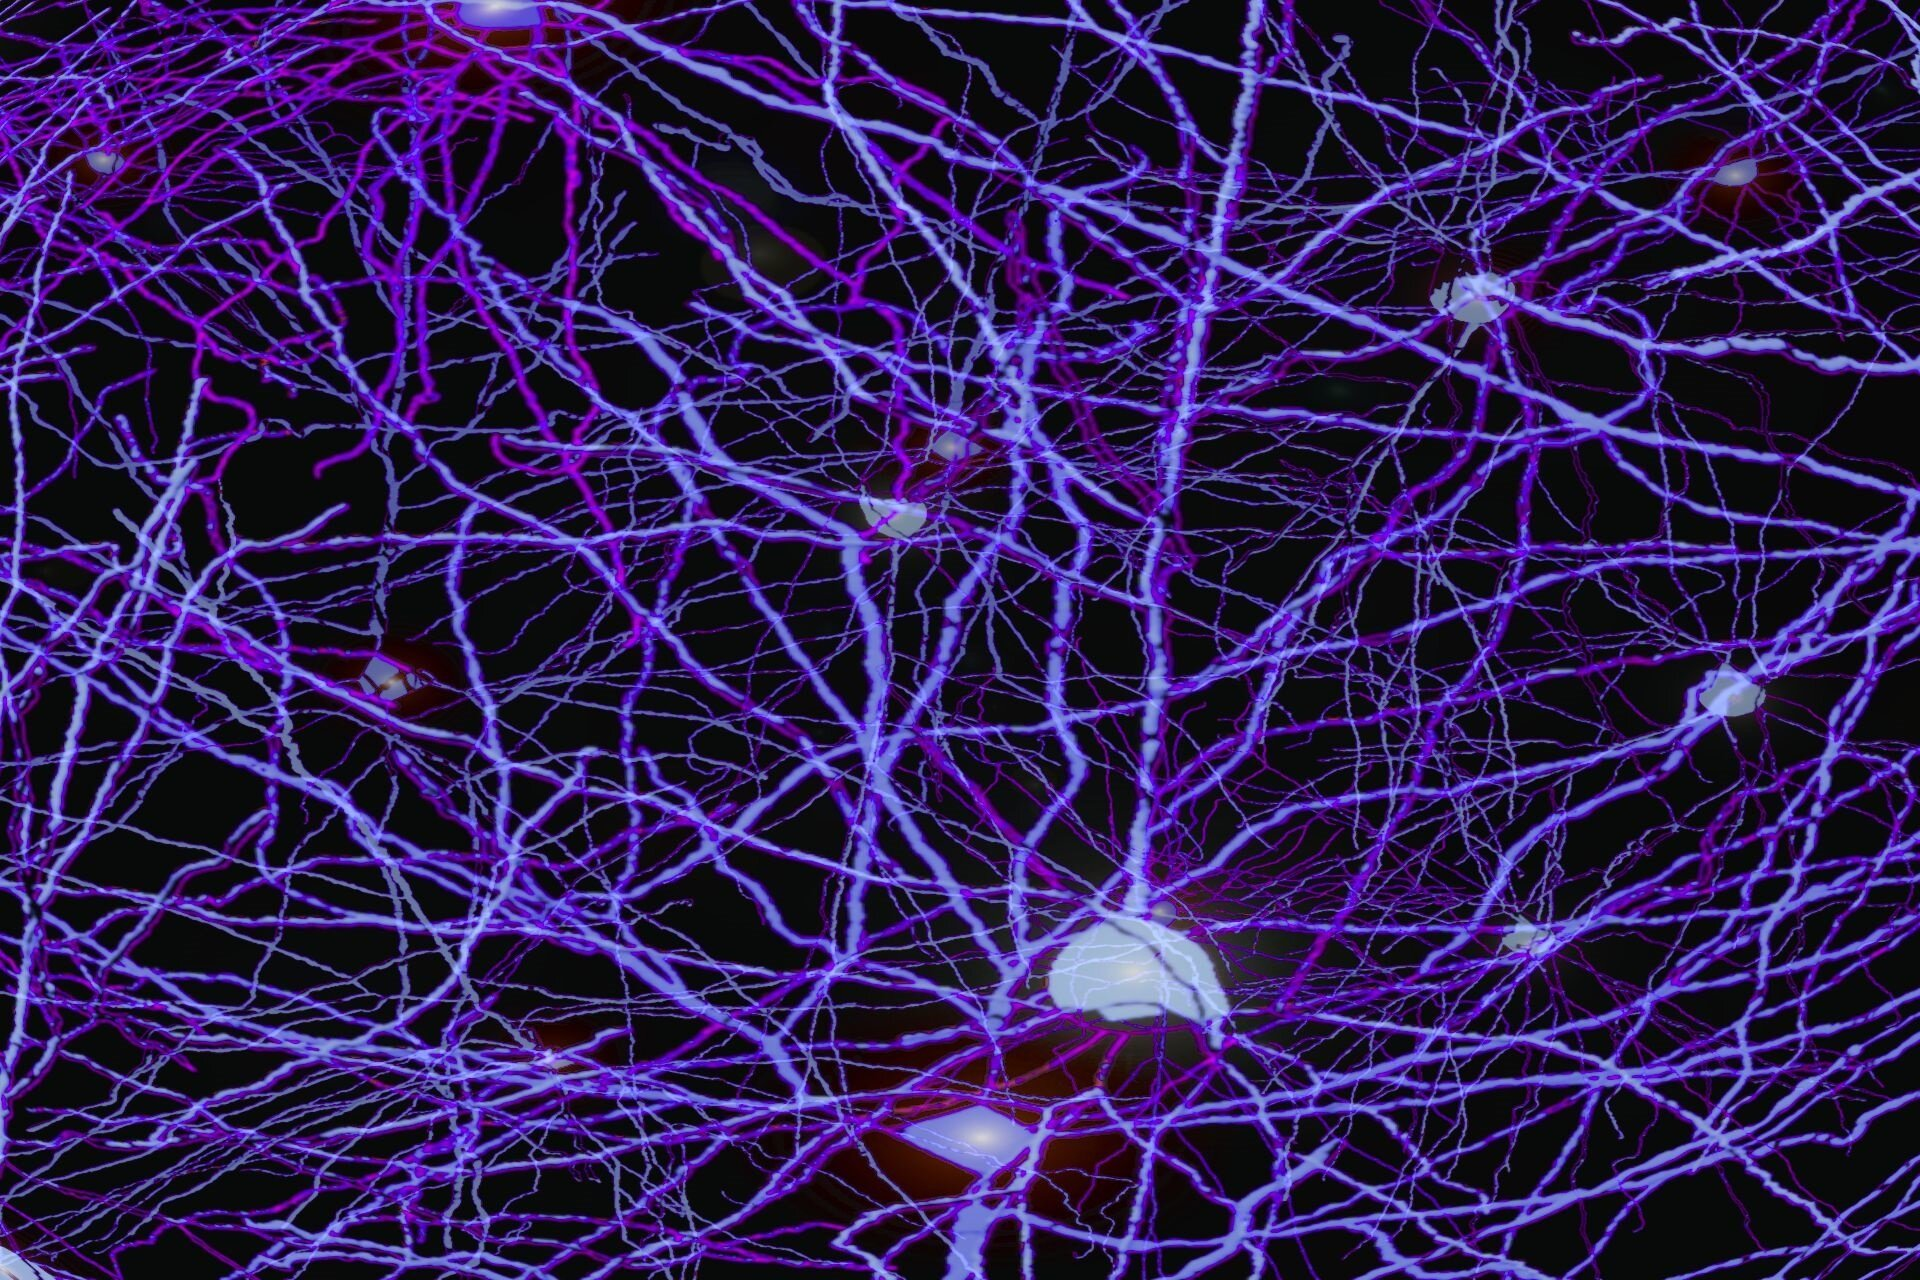 A new method to show neural representations